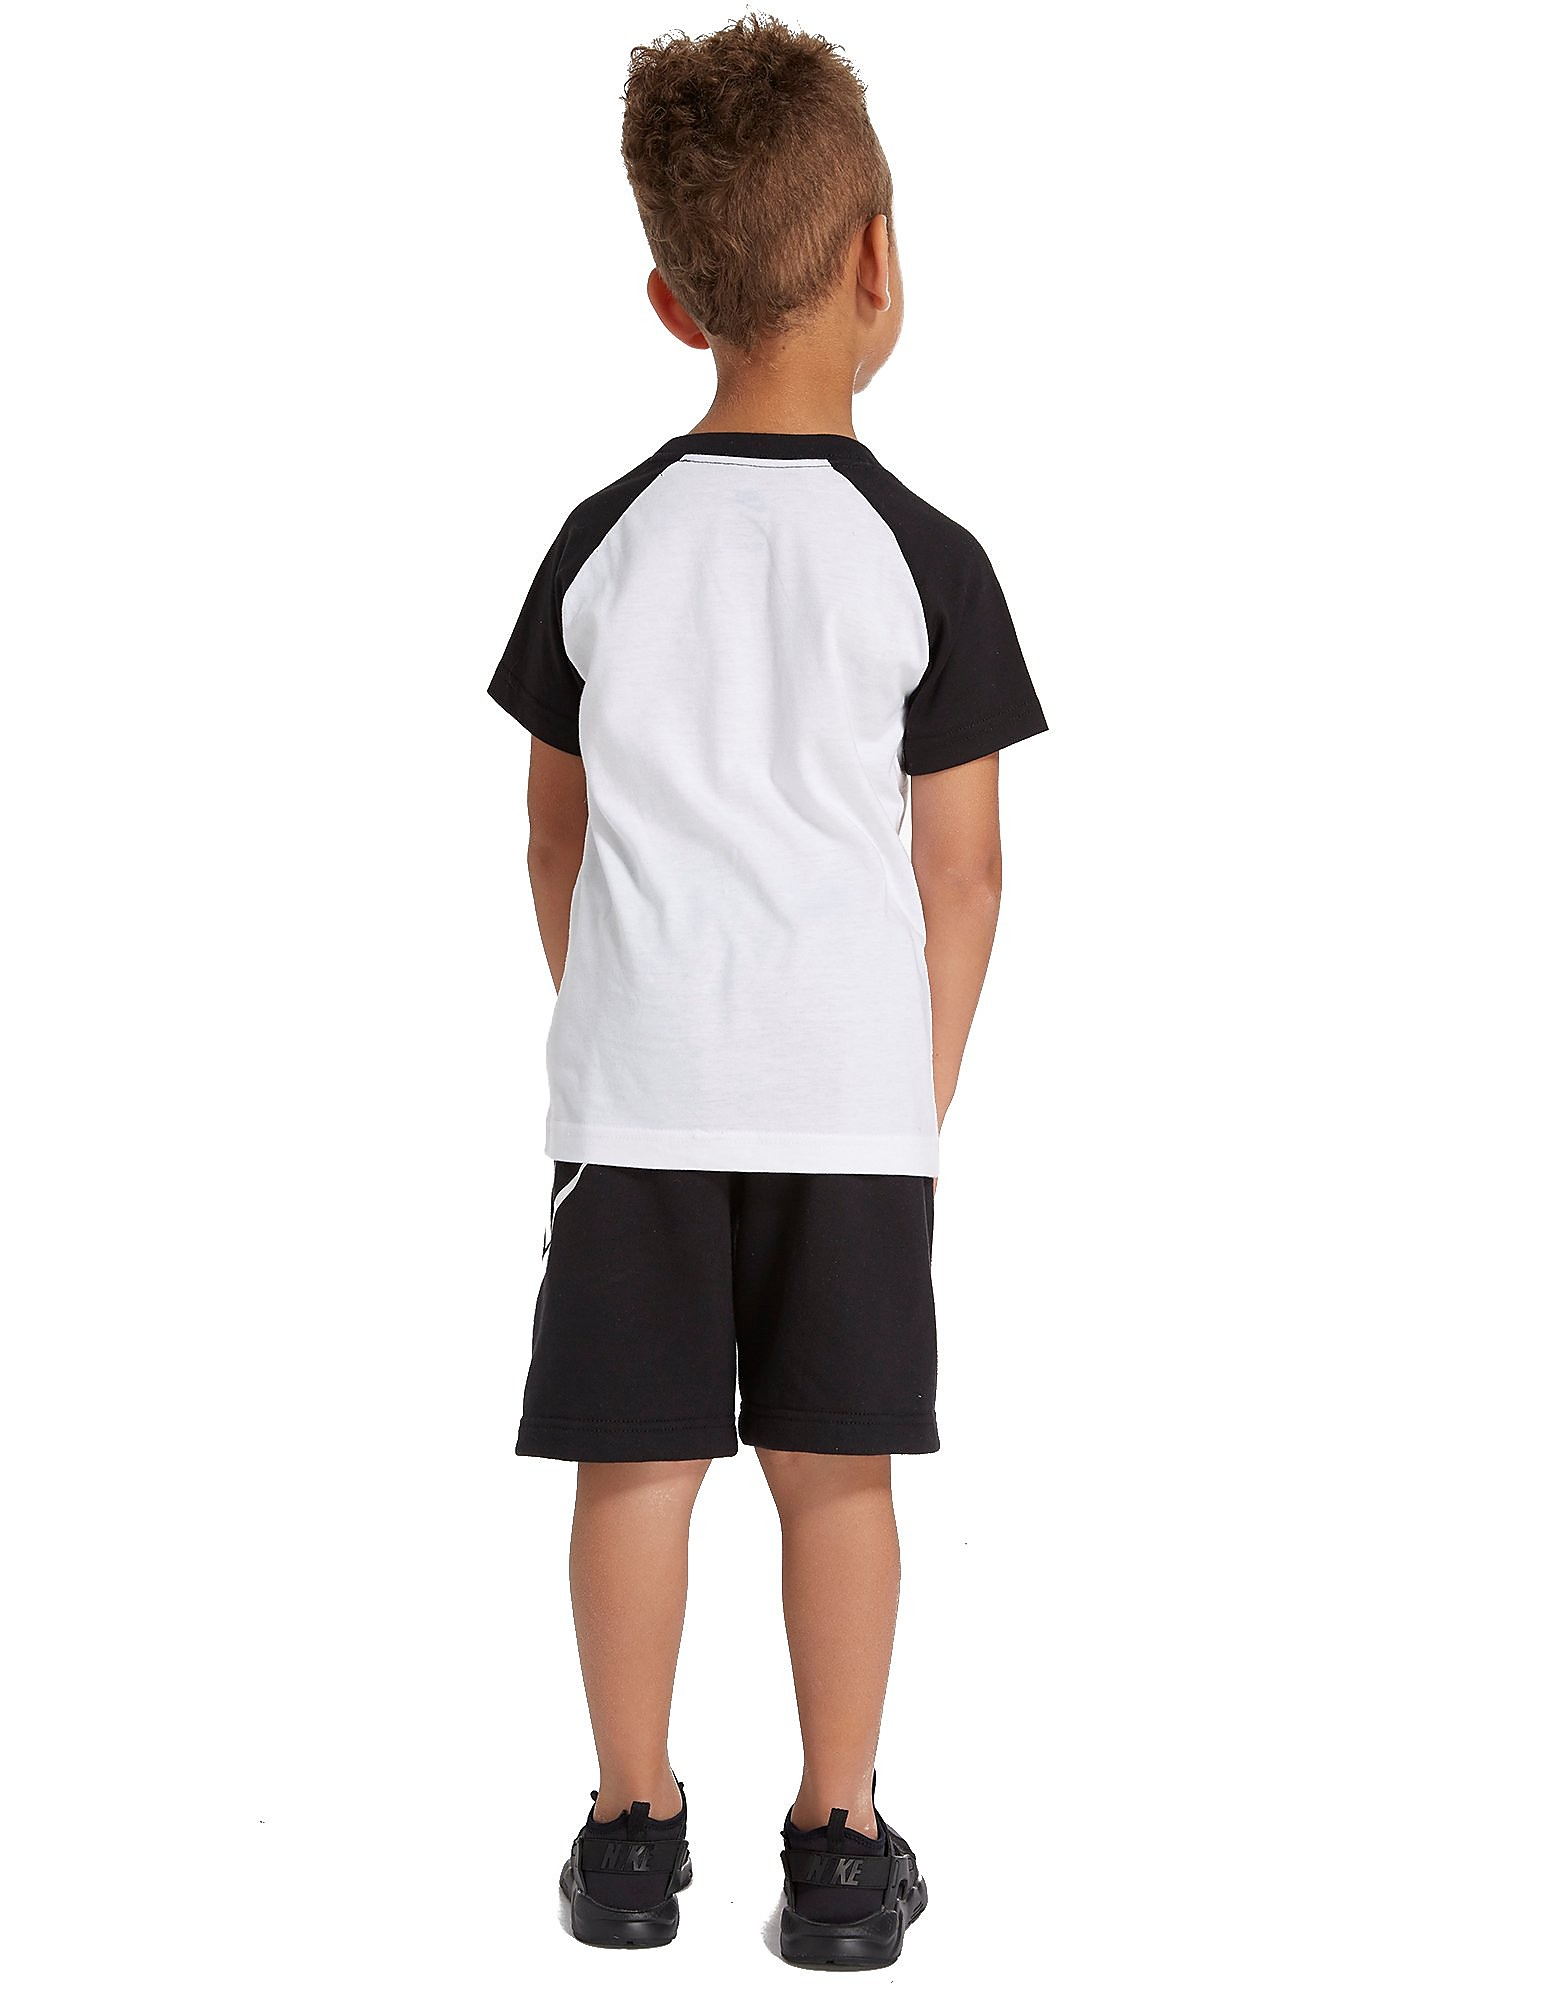 Nike Sportswear Raglan T-Shirt + Short Set Children